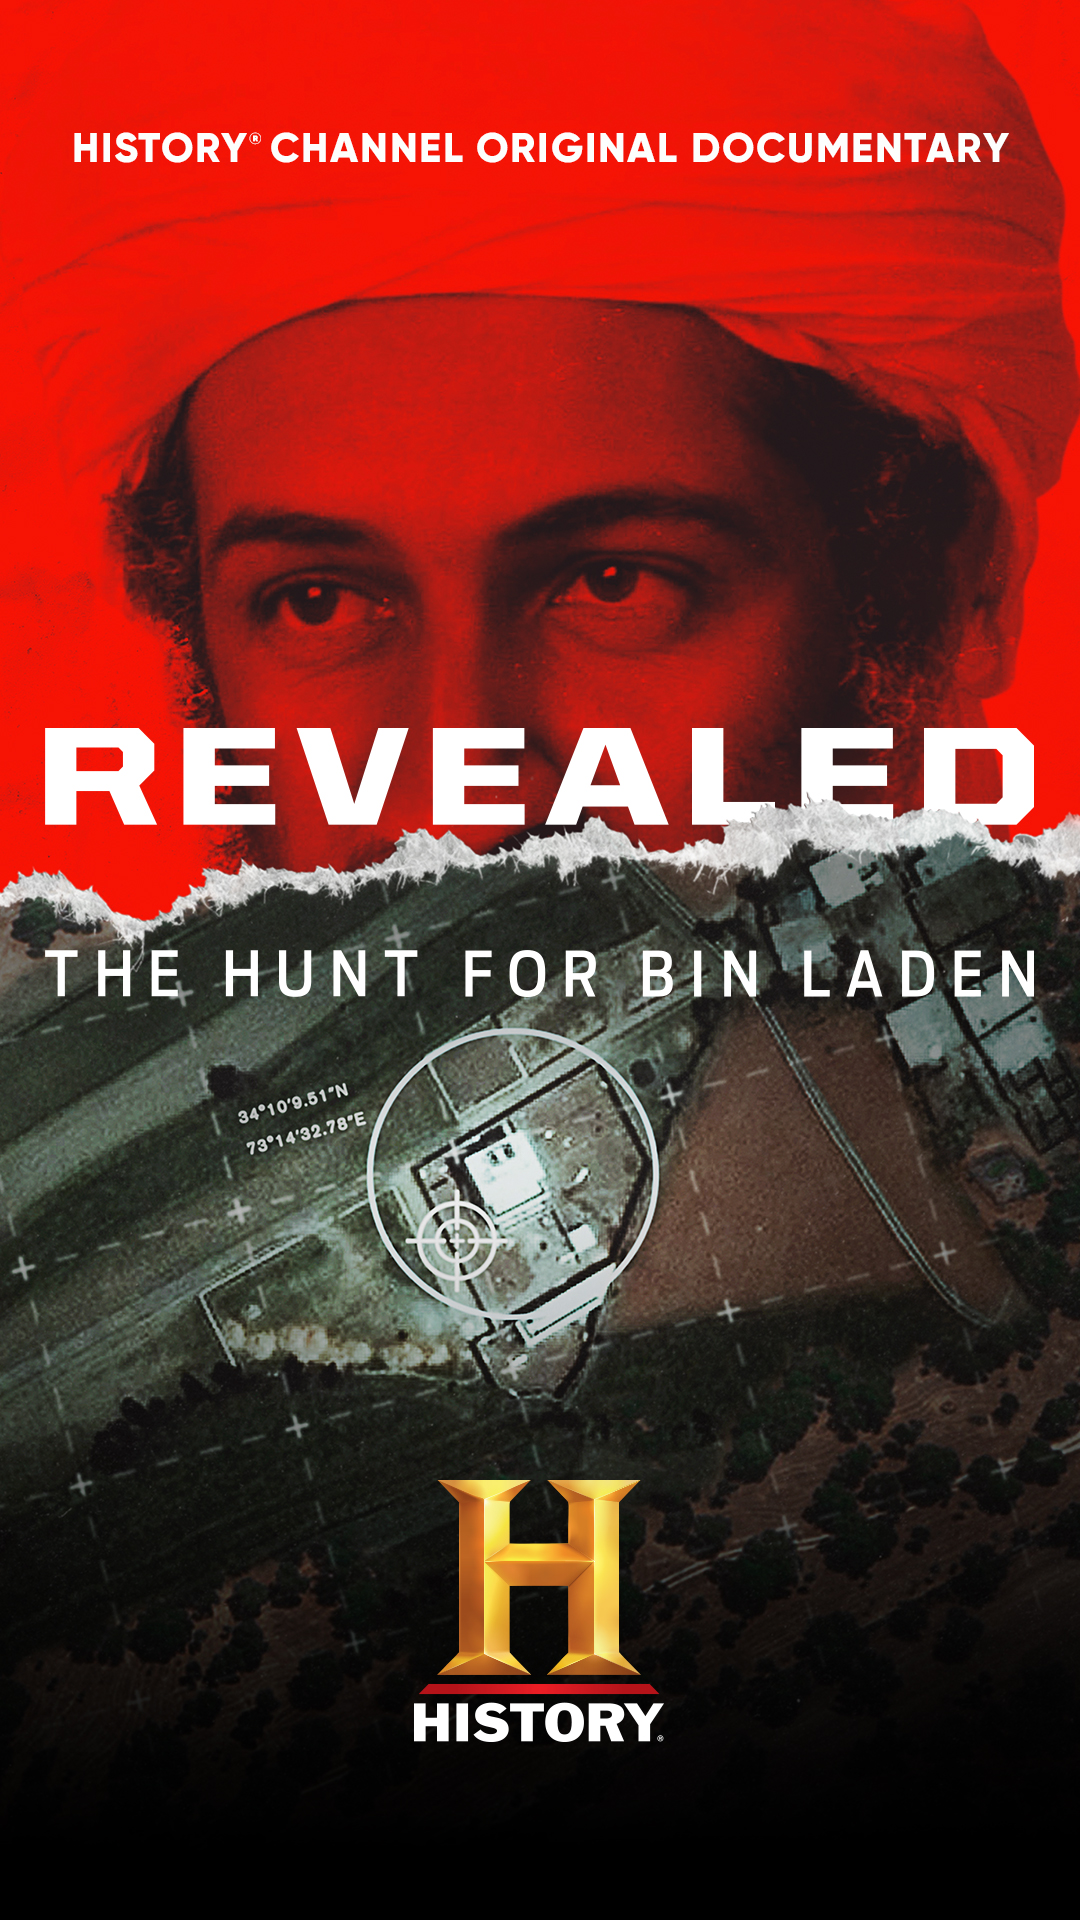 H_Revealed_The_Hunt_For_Bin_Laden_1080x1920_FIN